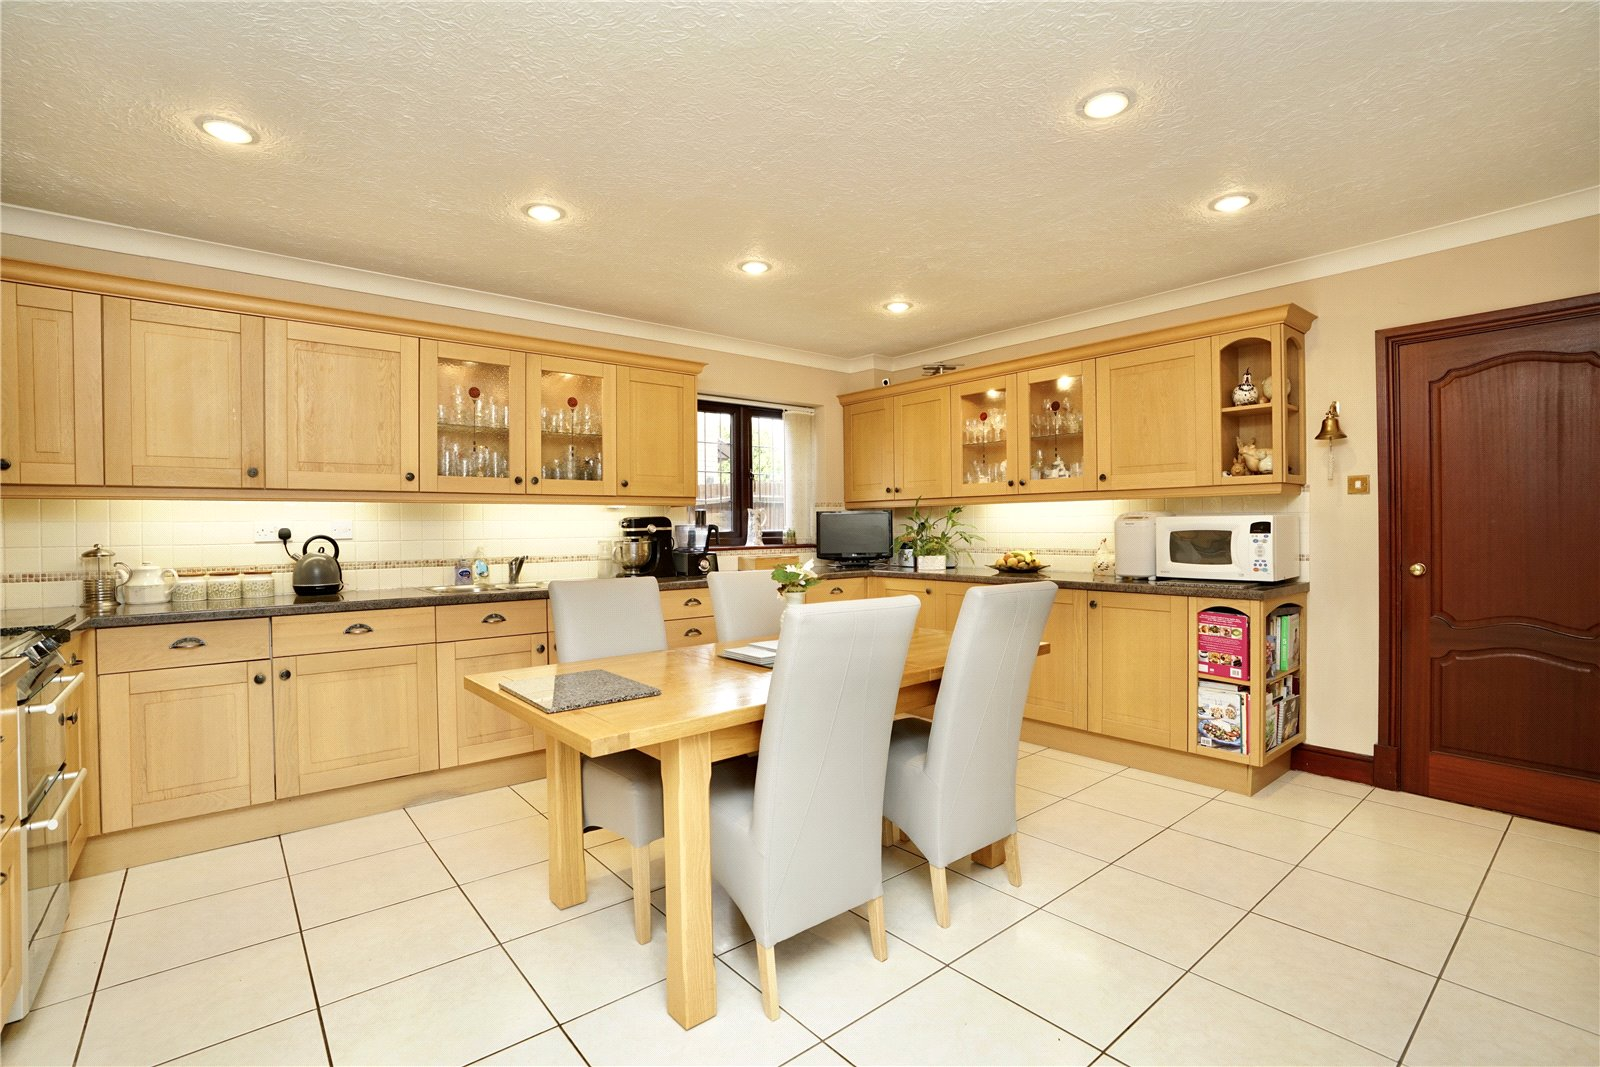 5 bed house for sale in Great North Road, Eaton Ford  - Property Image 2